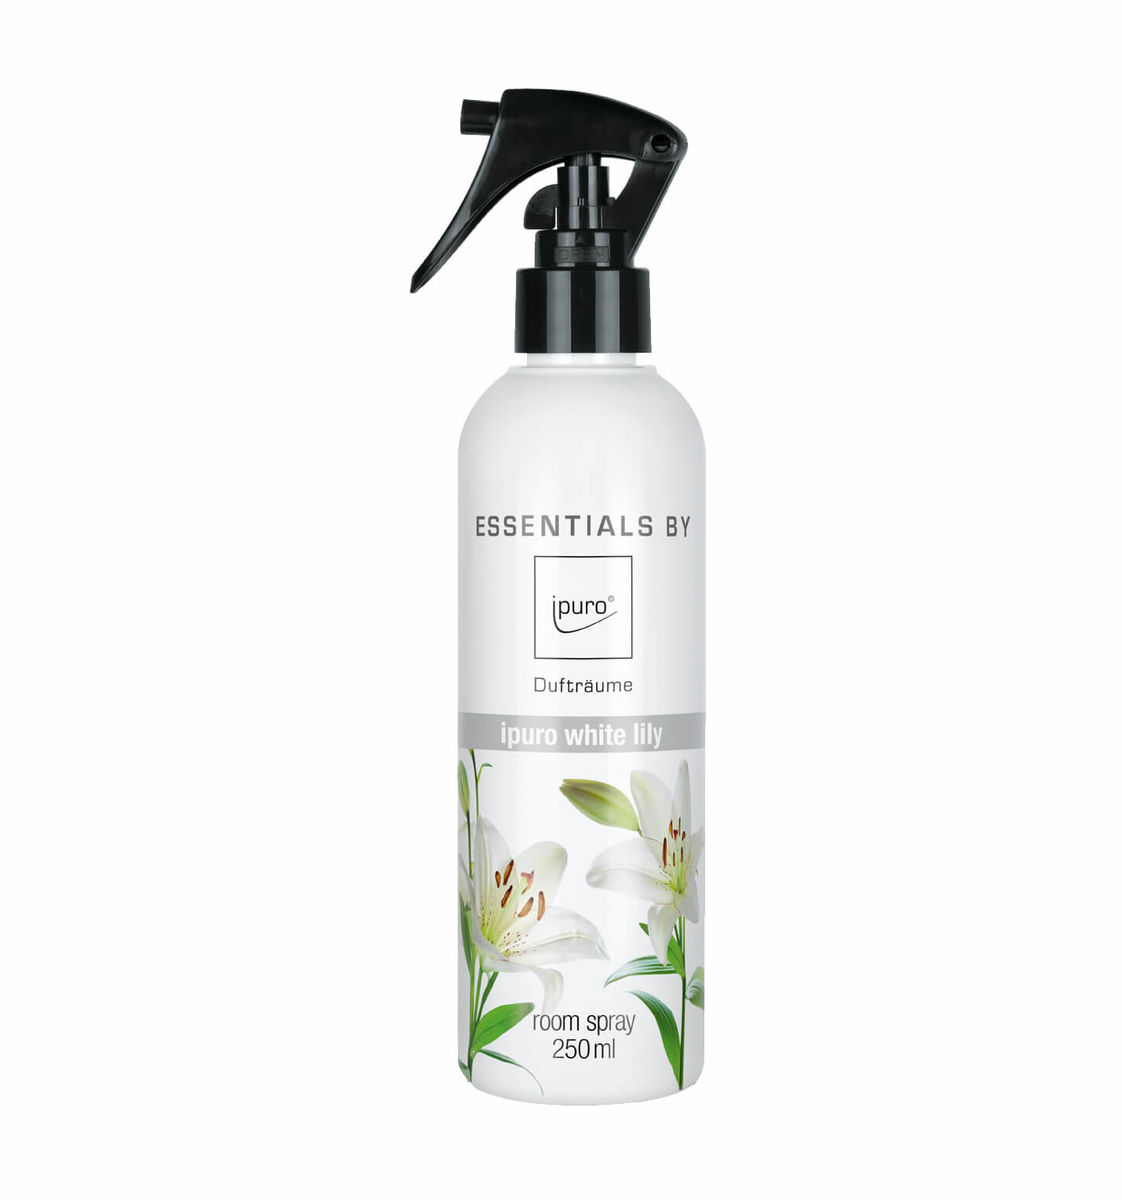 ESSENTIAL by ipuro white lilly Raumspray